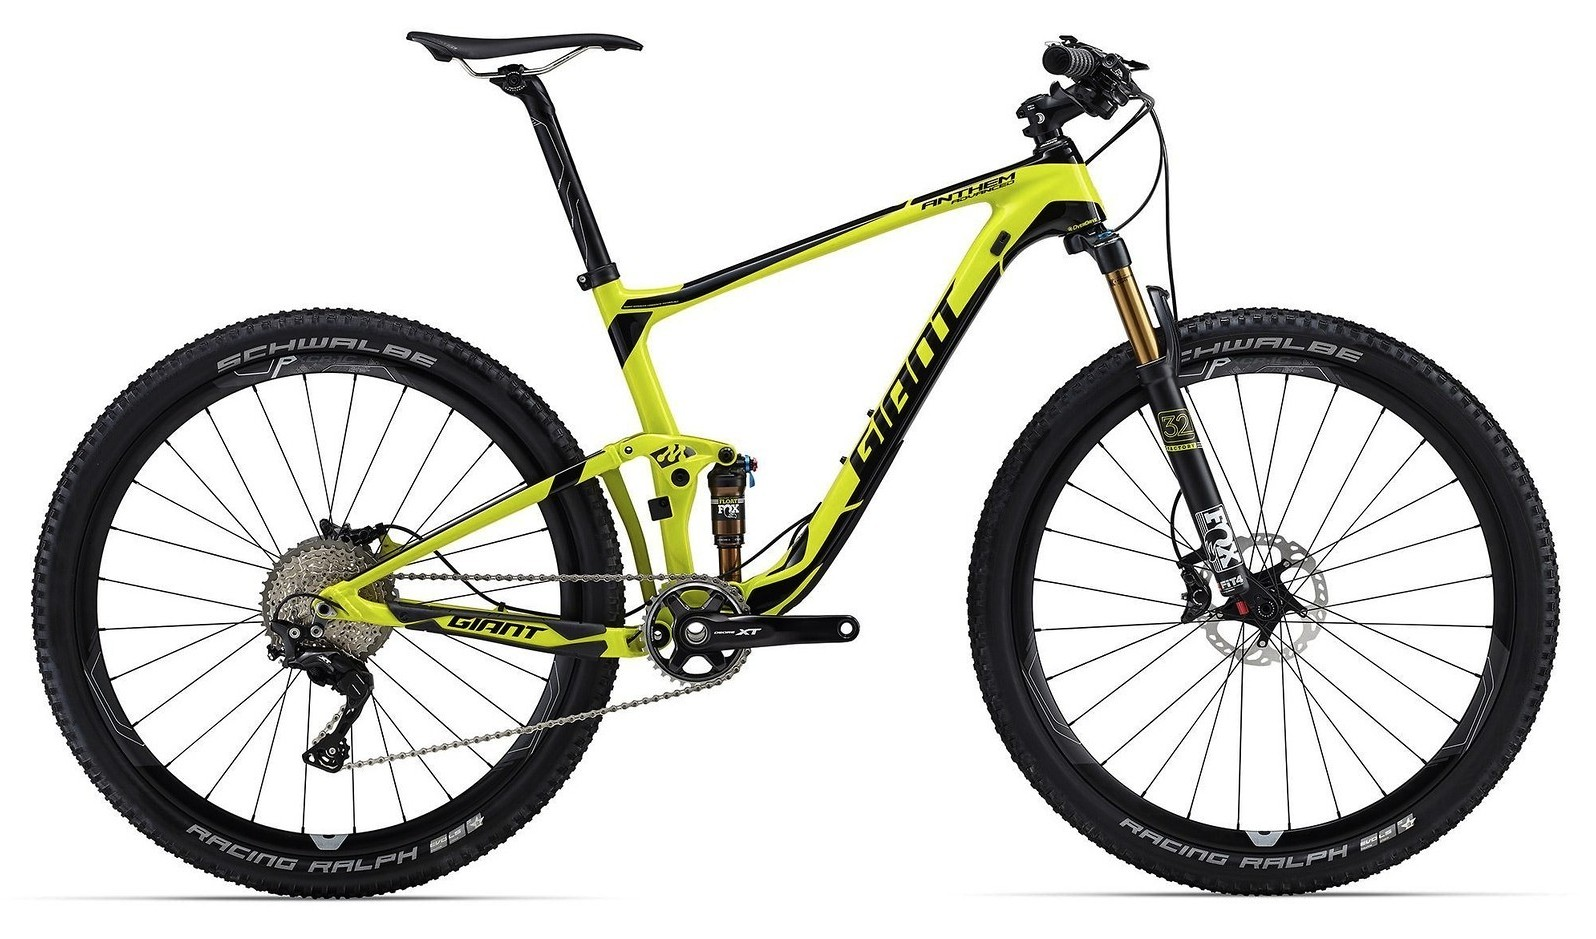 2016 Giant Anthem Advanced 27.5 1 Bike s1600_Anthem_Advanced_275_1_Yellow_Black